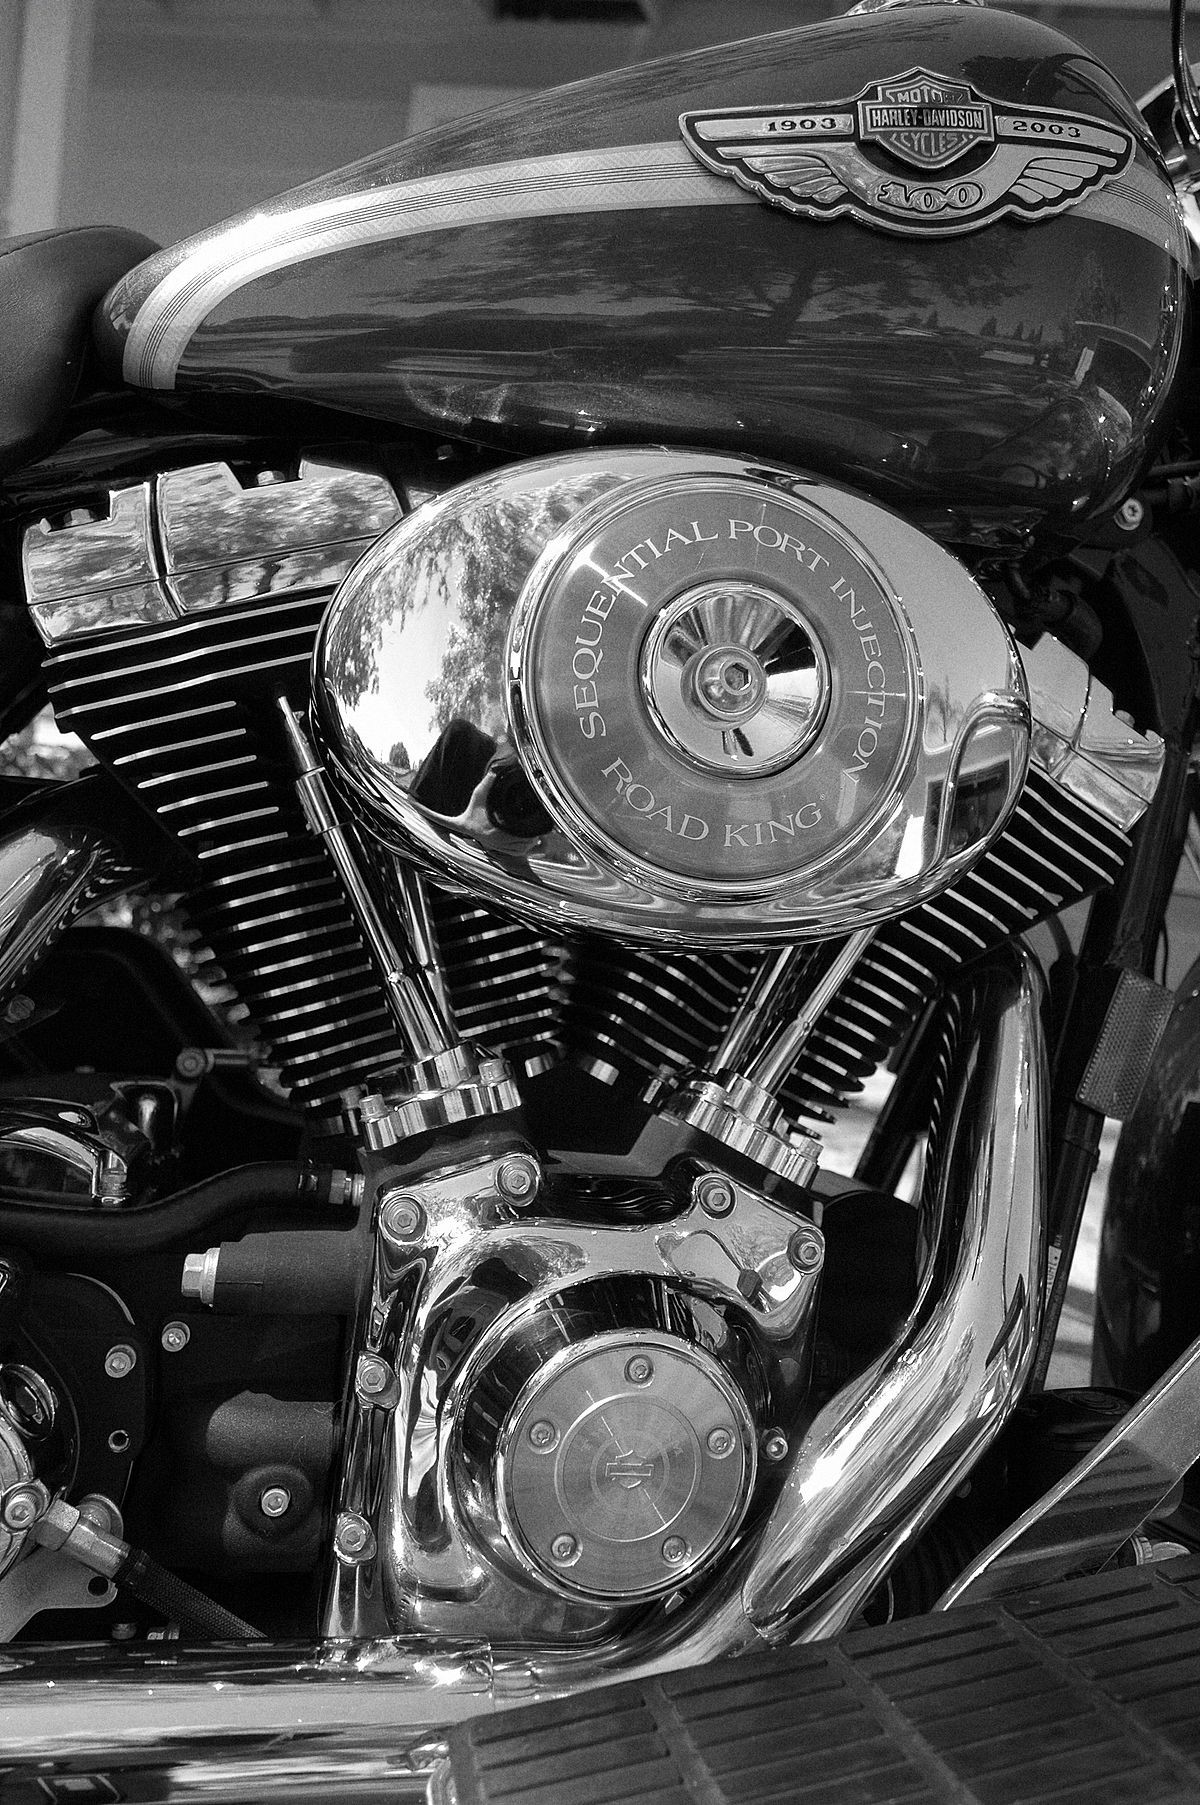 Harley Davidson V Twin Engine Diagram V Twin Engine – My ... on